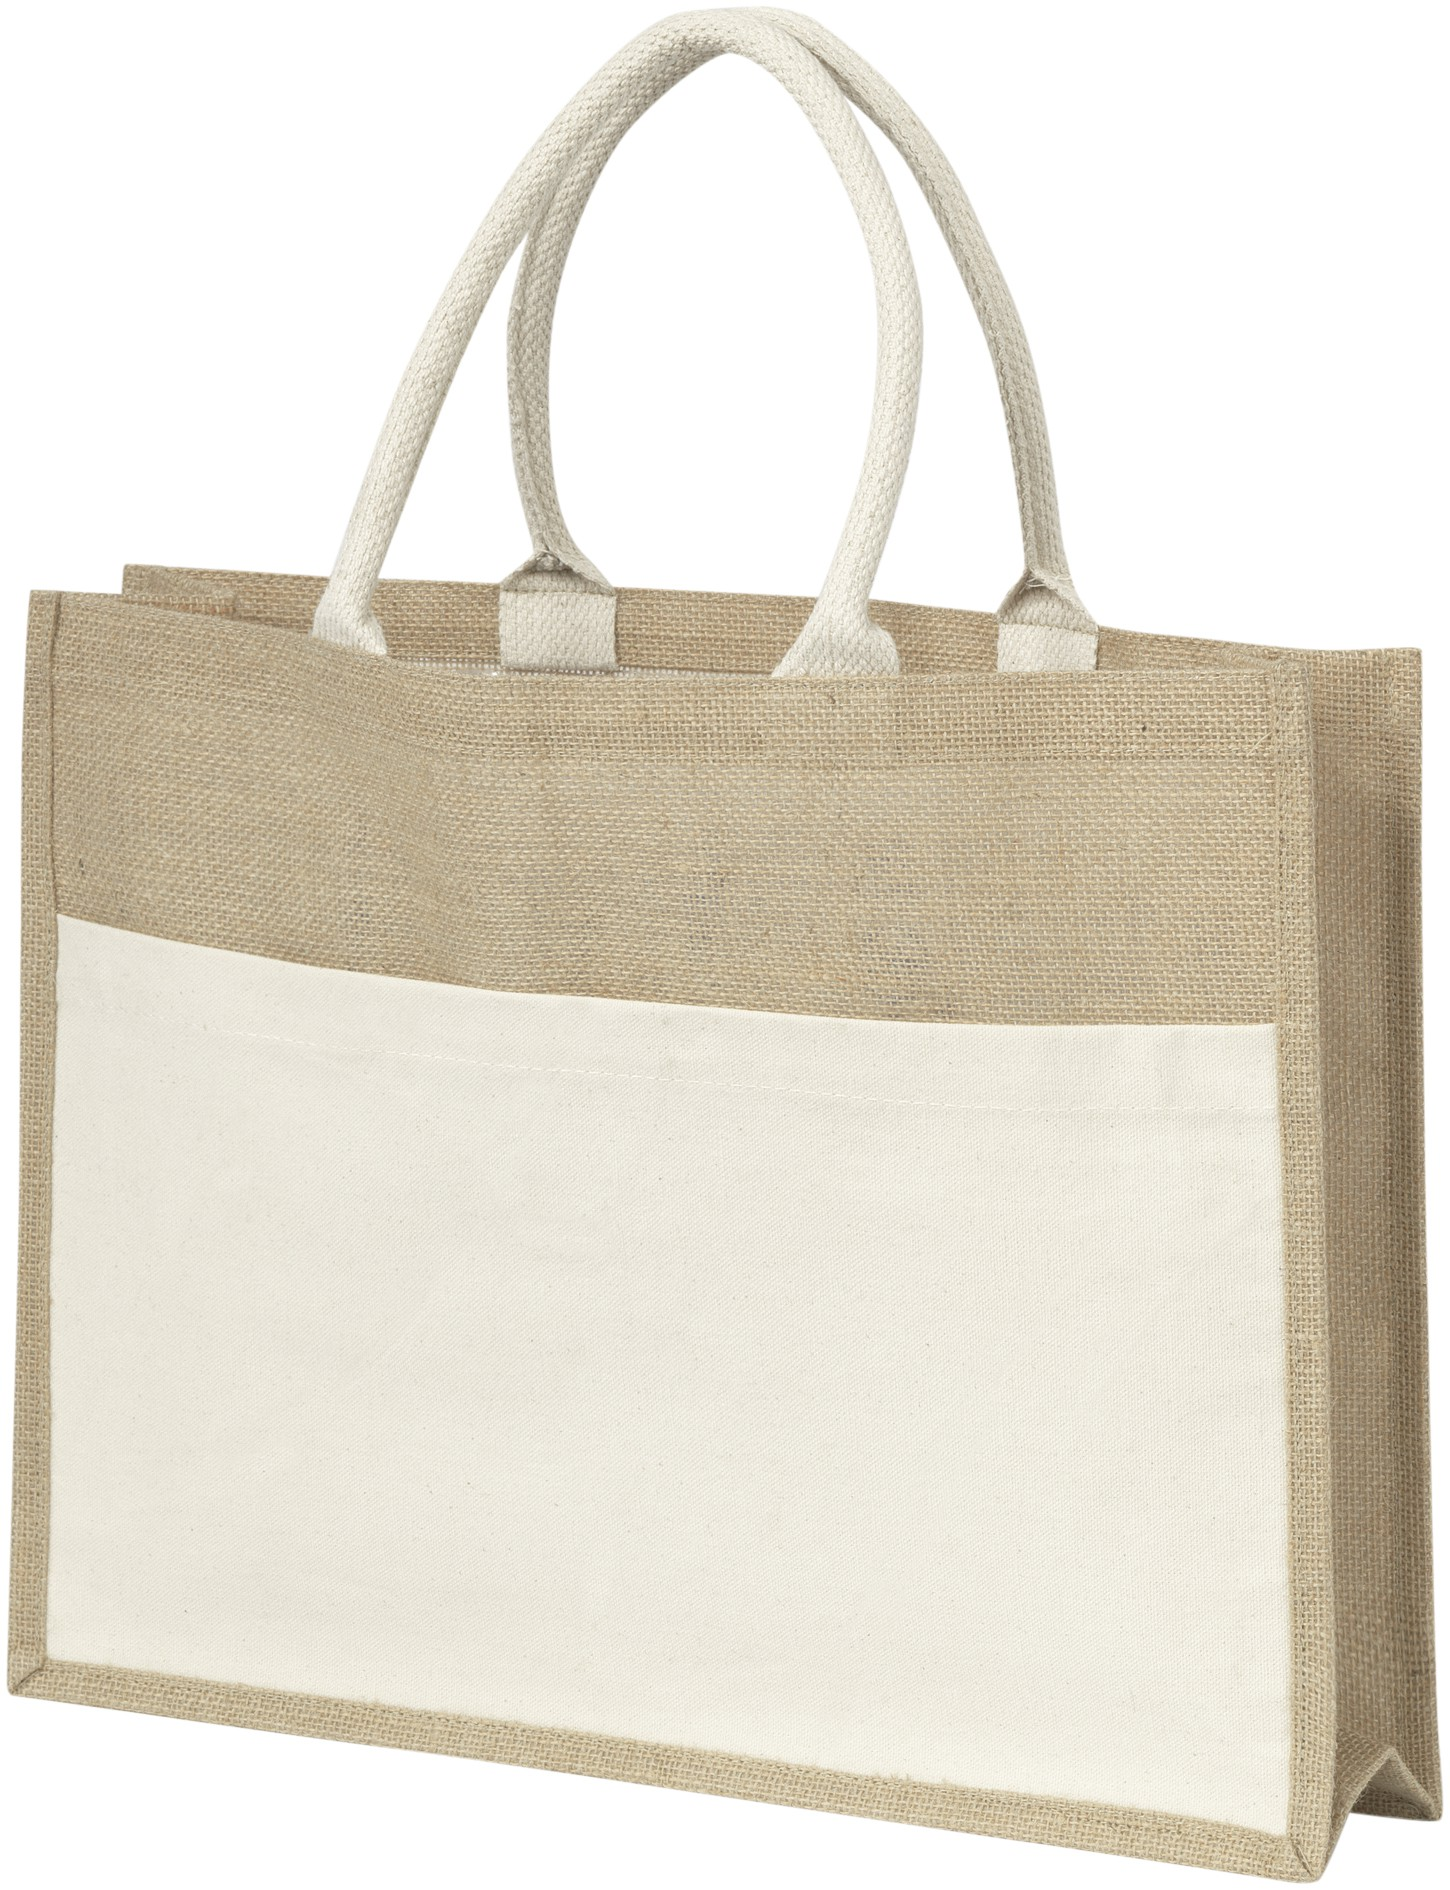 Jute Bag With Plastic Backing Natural Canvas Bags